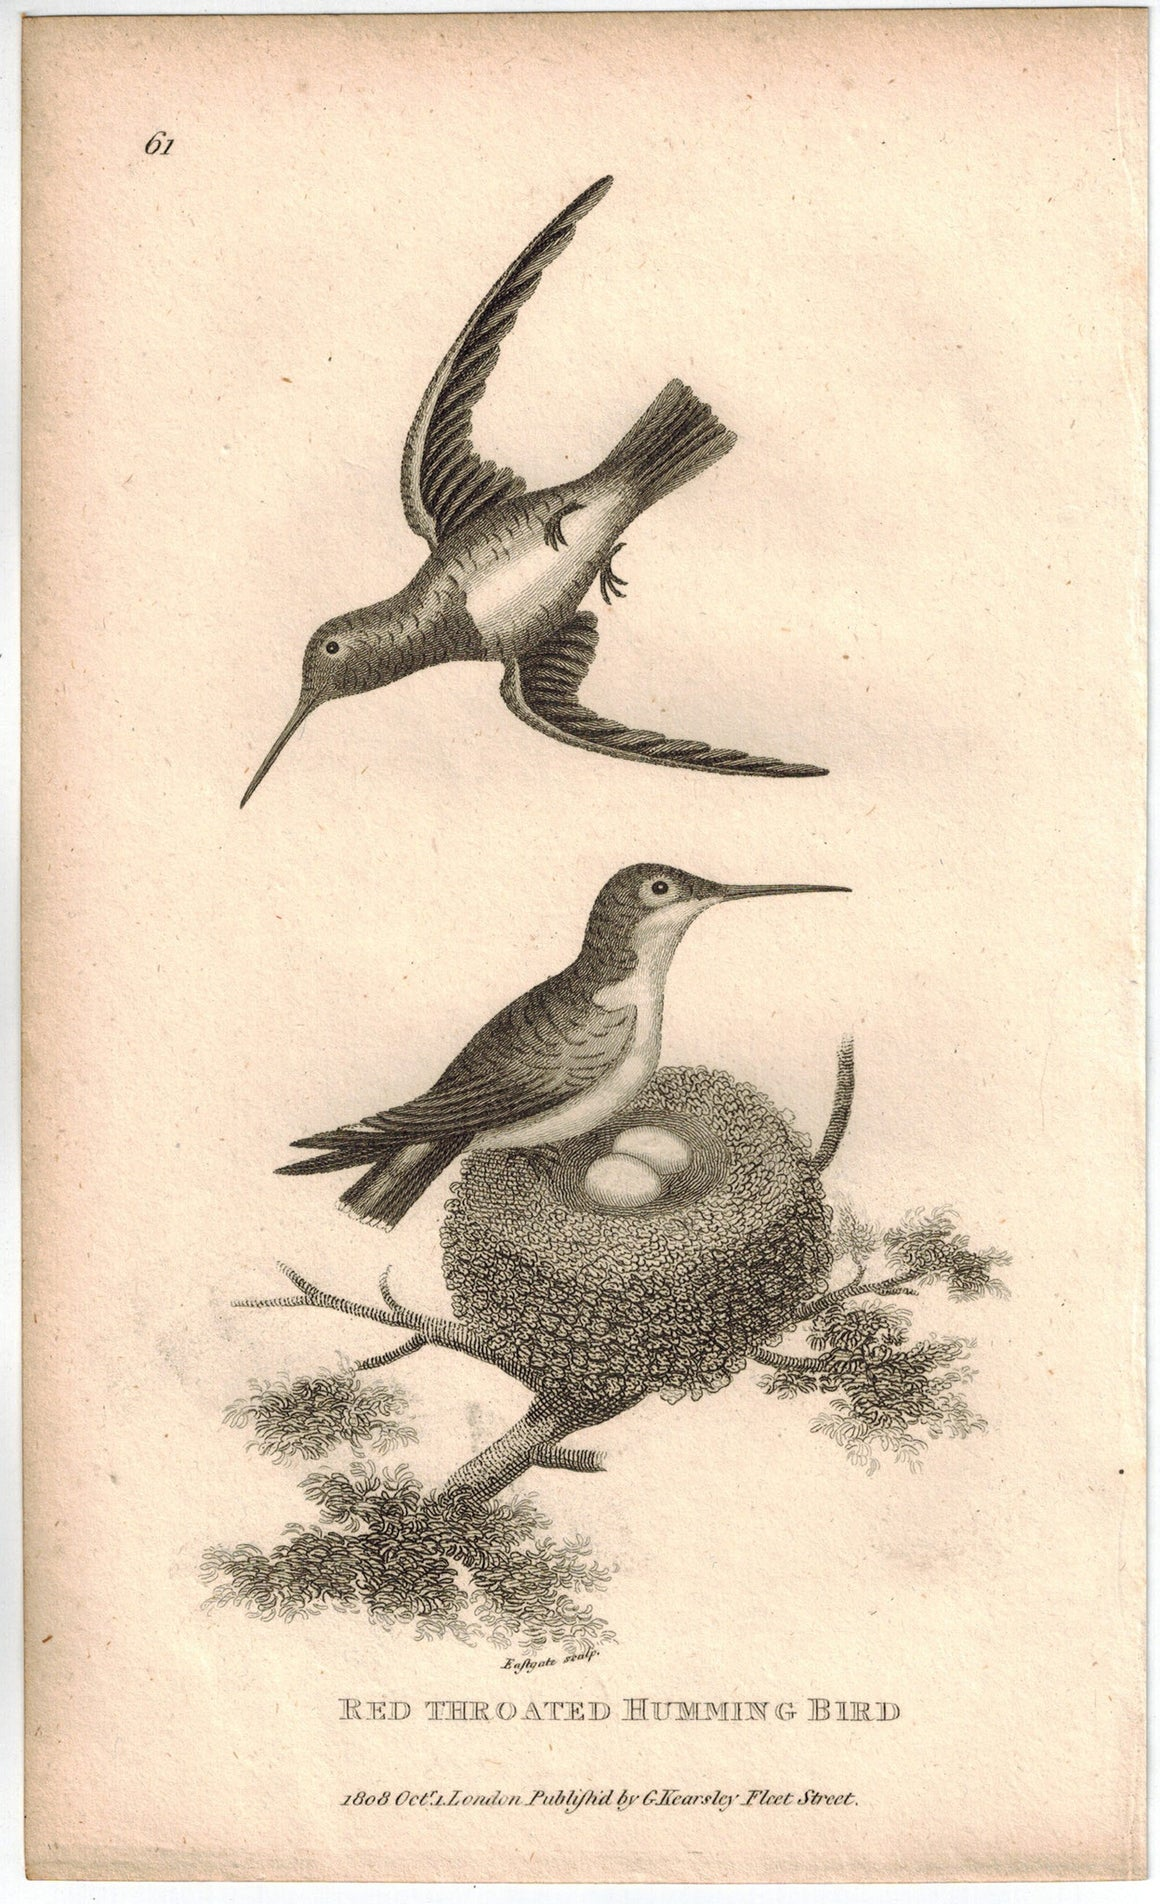 Red Throated Humming Bird Print 1809 George Shaw Original Engraving